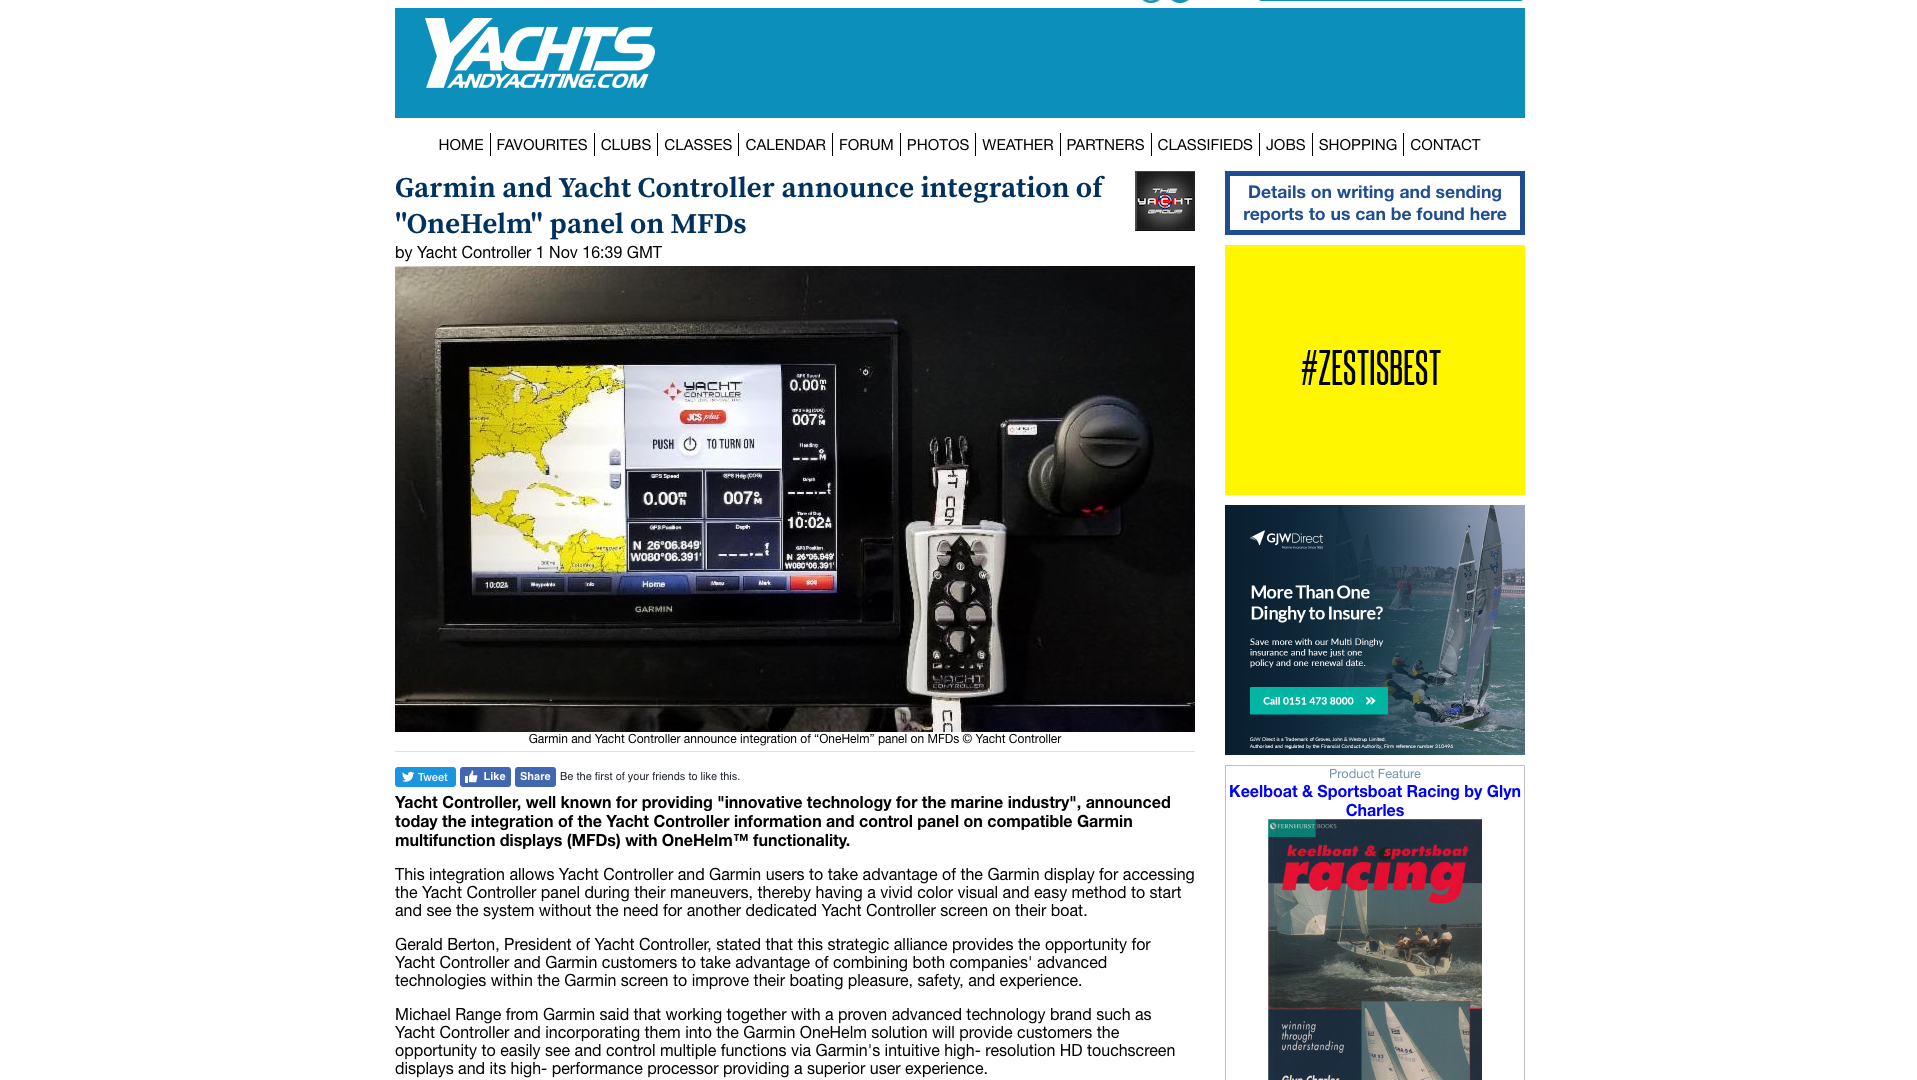 Yacht Controller Wireless Remote Control Of Your The System Has One Mode T You Yachts And Yachting Garmin Announce Integration